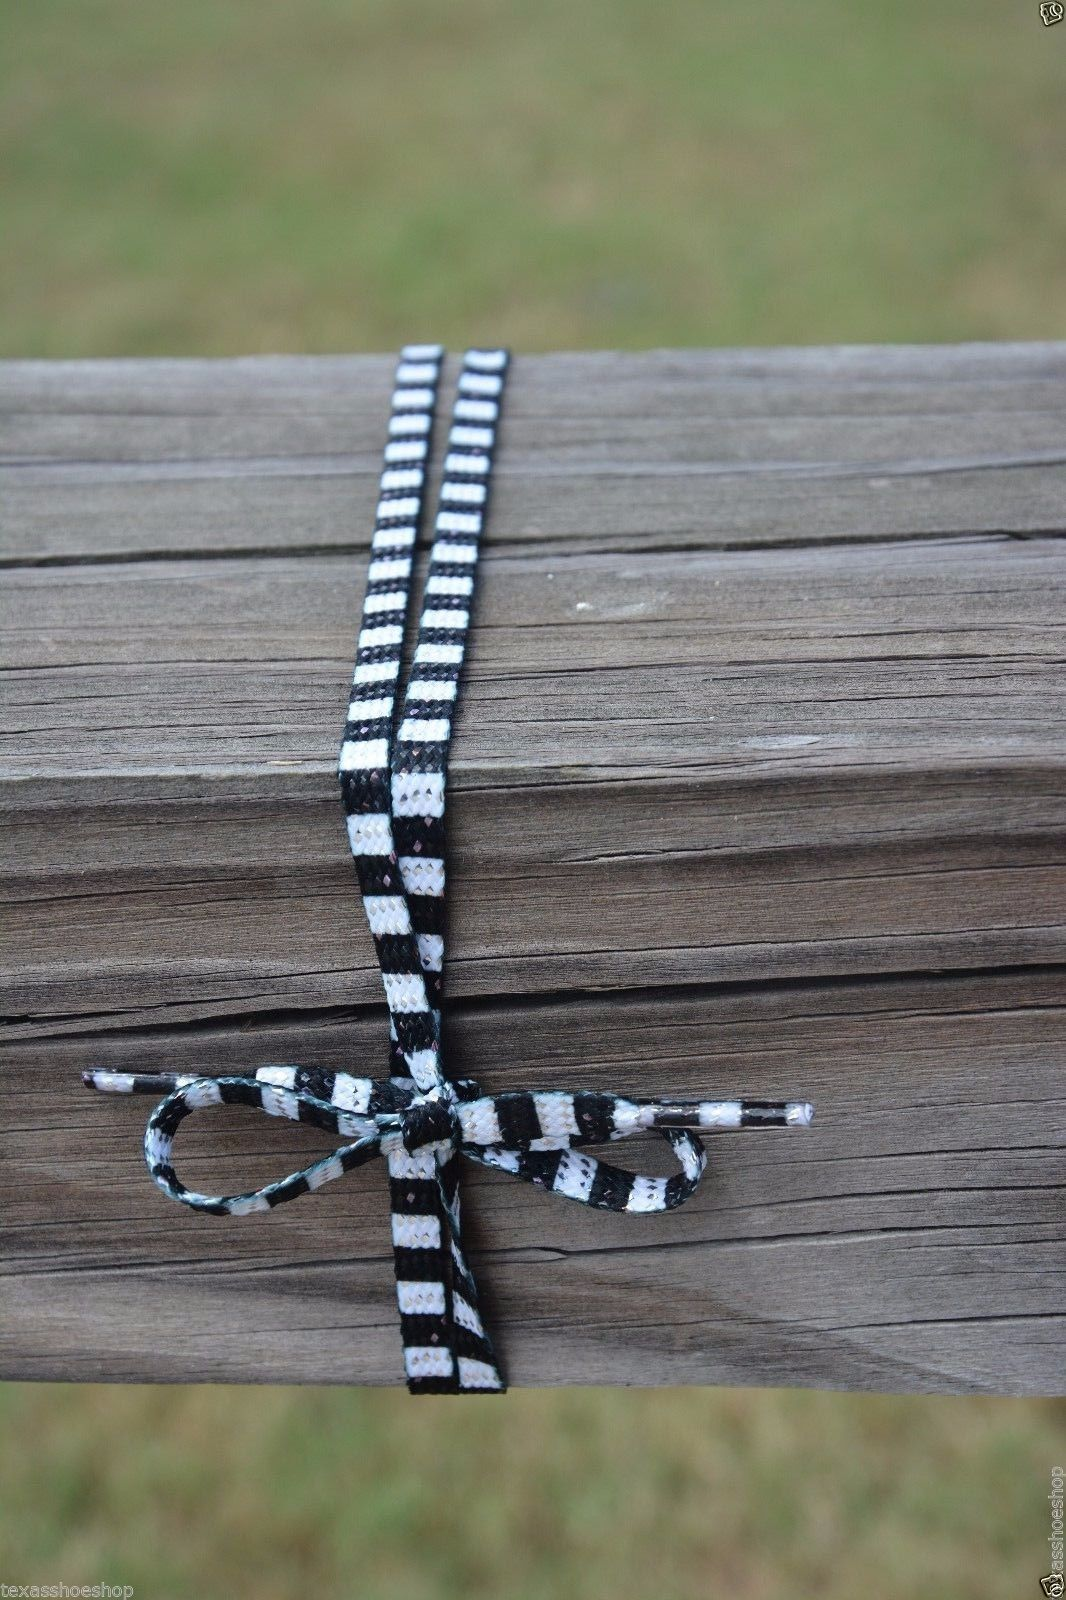 "Black & White Striped Lace ""beetlejuice"" 45"" long enough for 7 Pairs of eyelets"